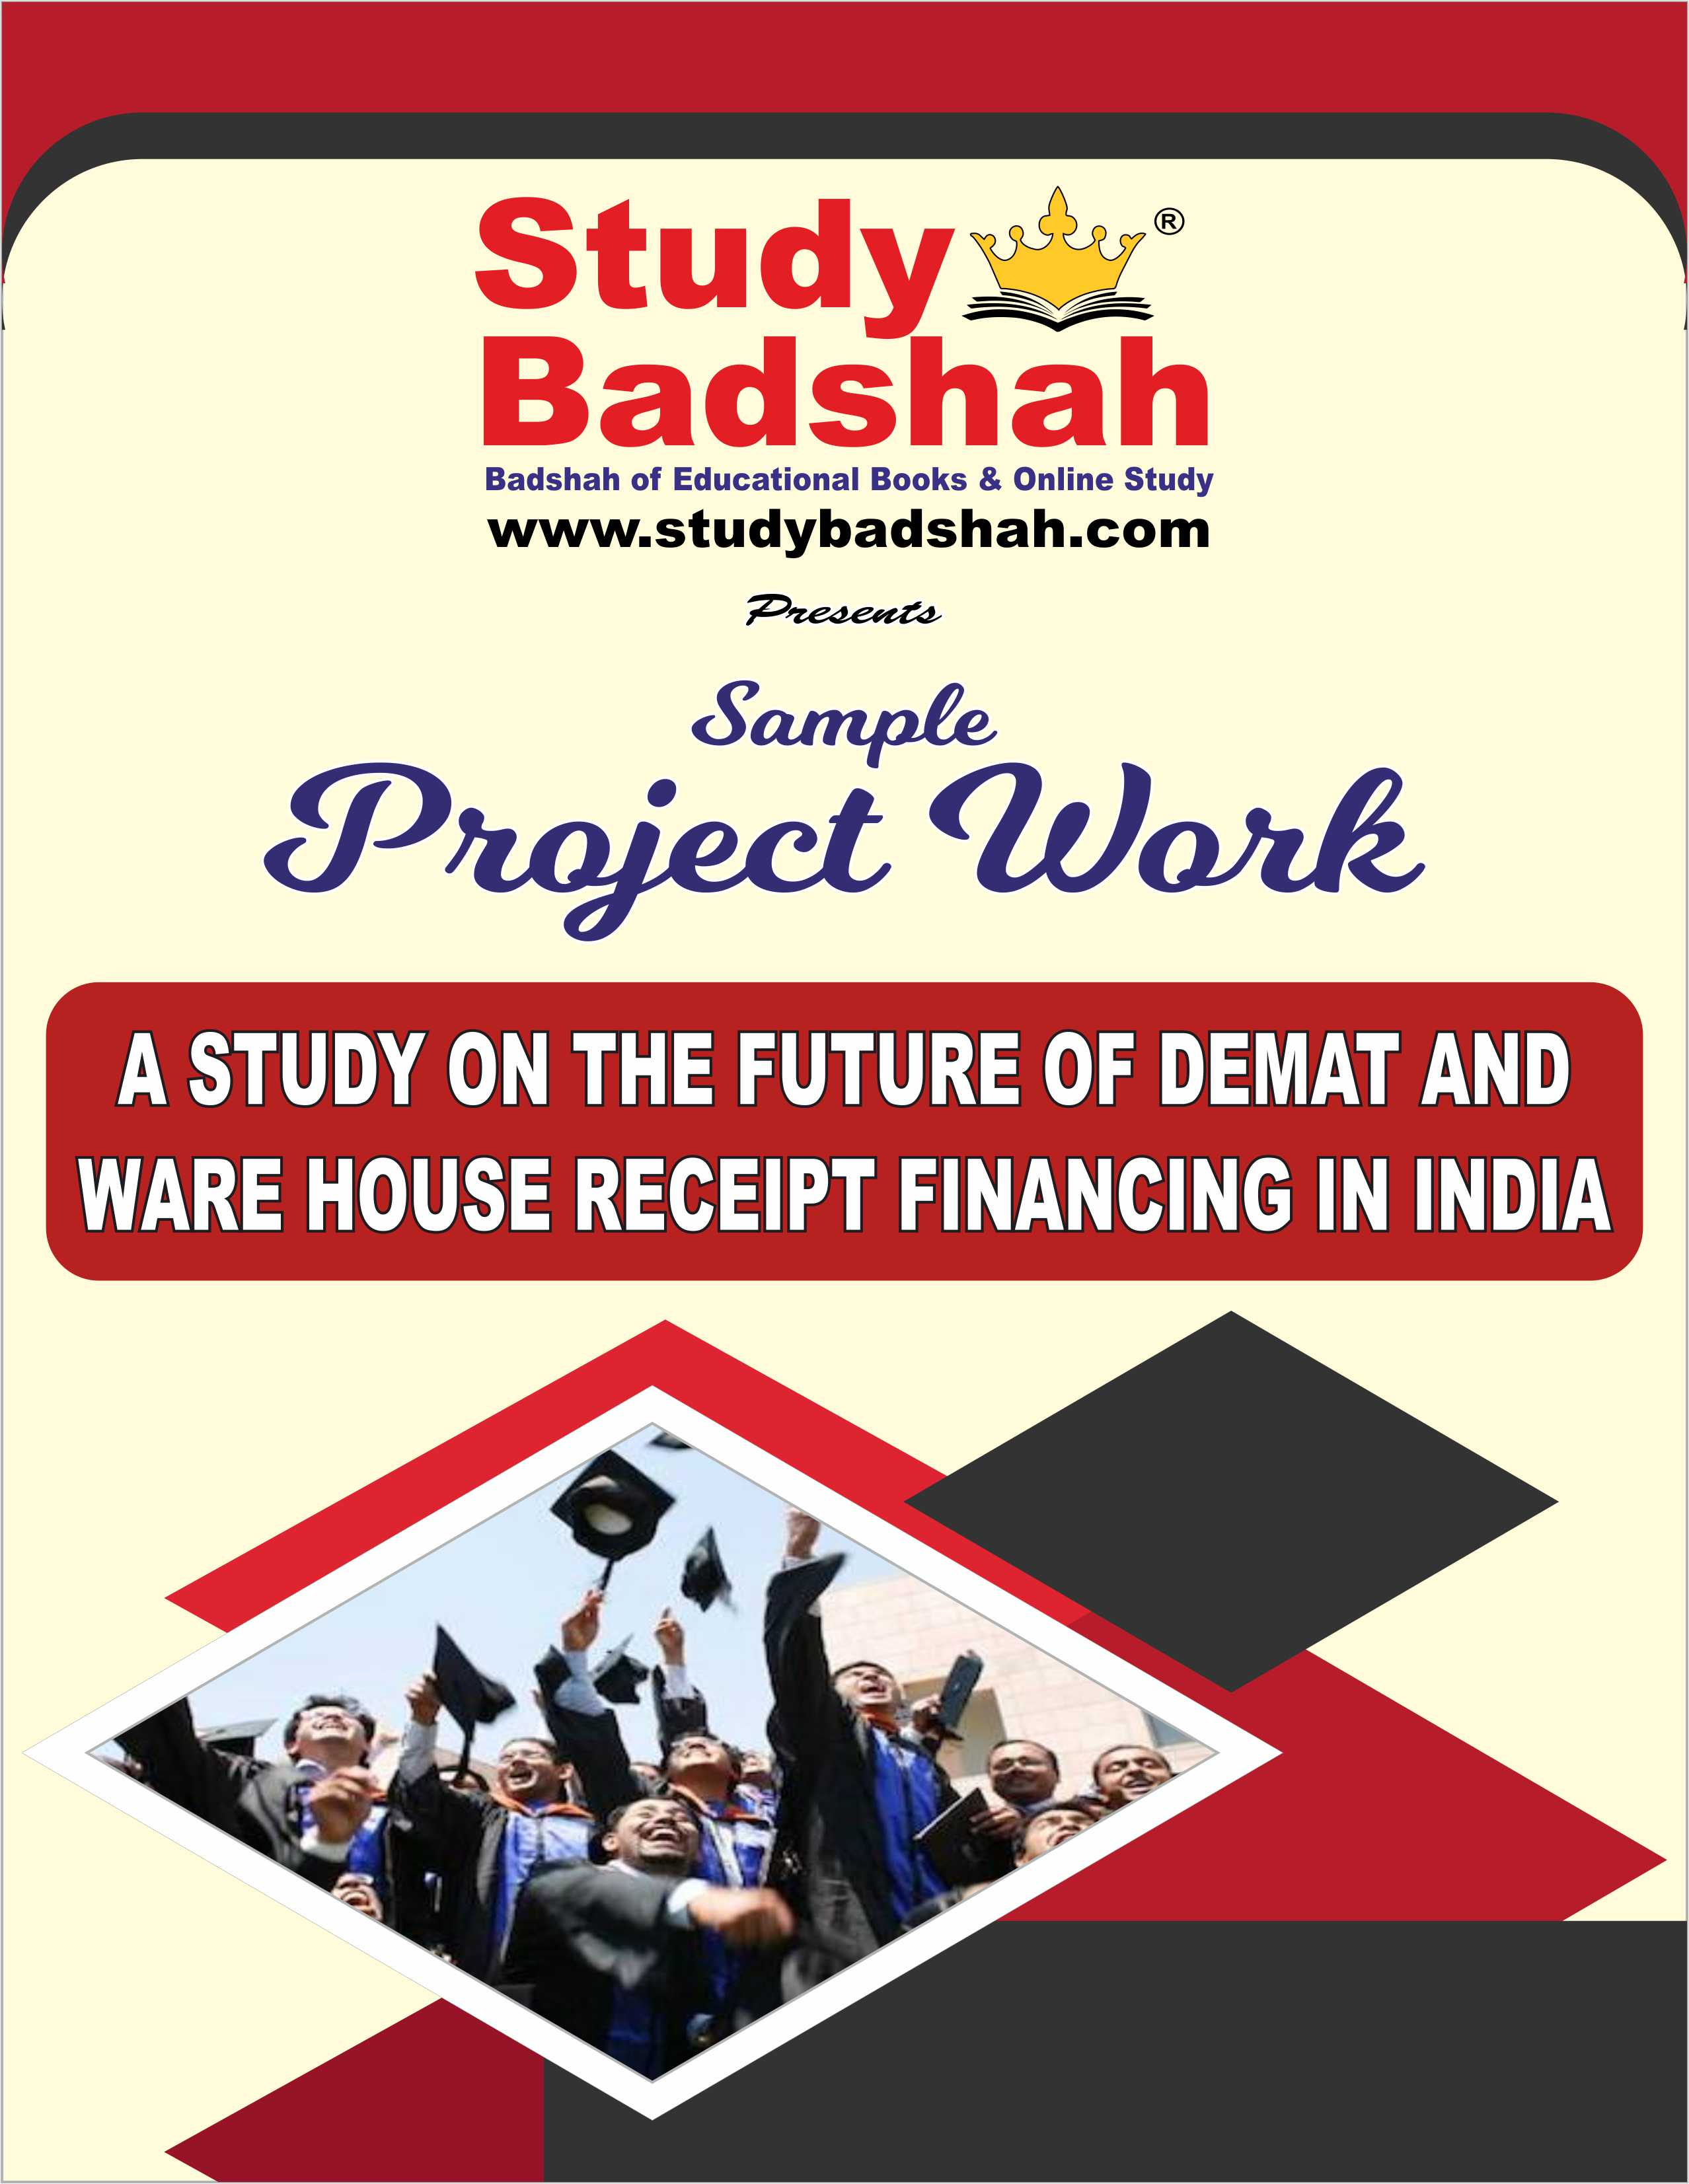 A Study on the Future of Demat and Ware House Receipt Financing in India